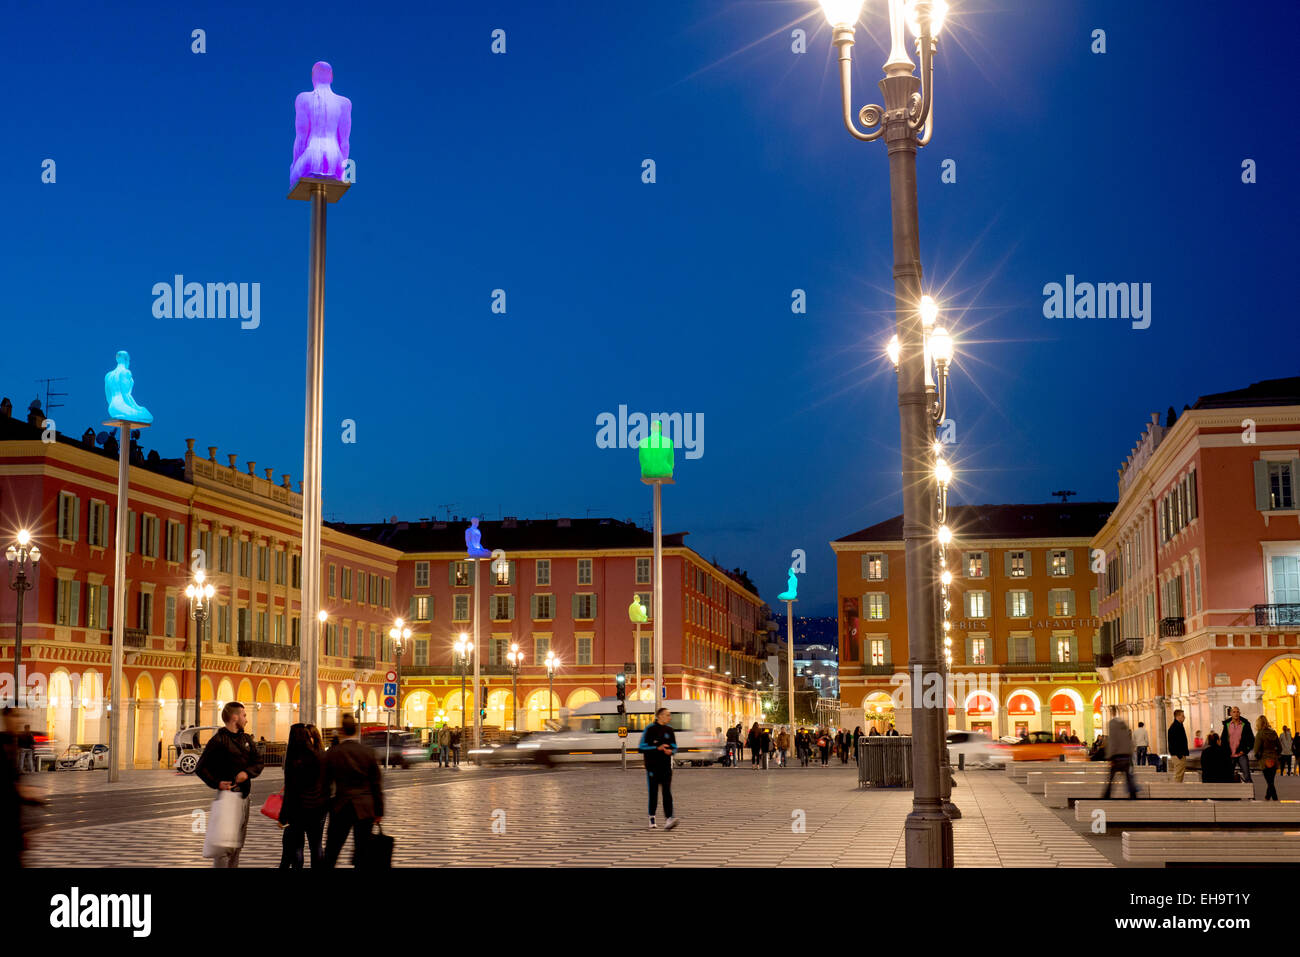 Place Massena square in the Old Town center of Nice, Provence, France, Europe - with sculpture columns which change - Stock Image